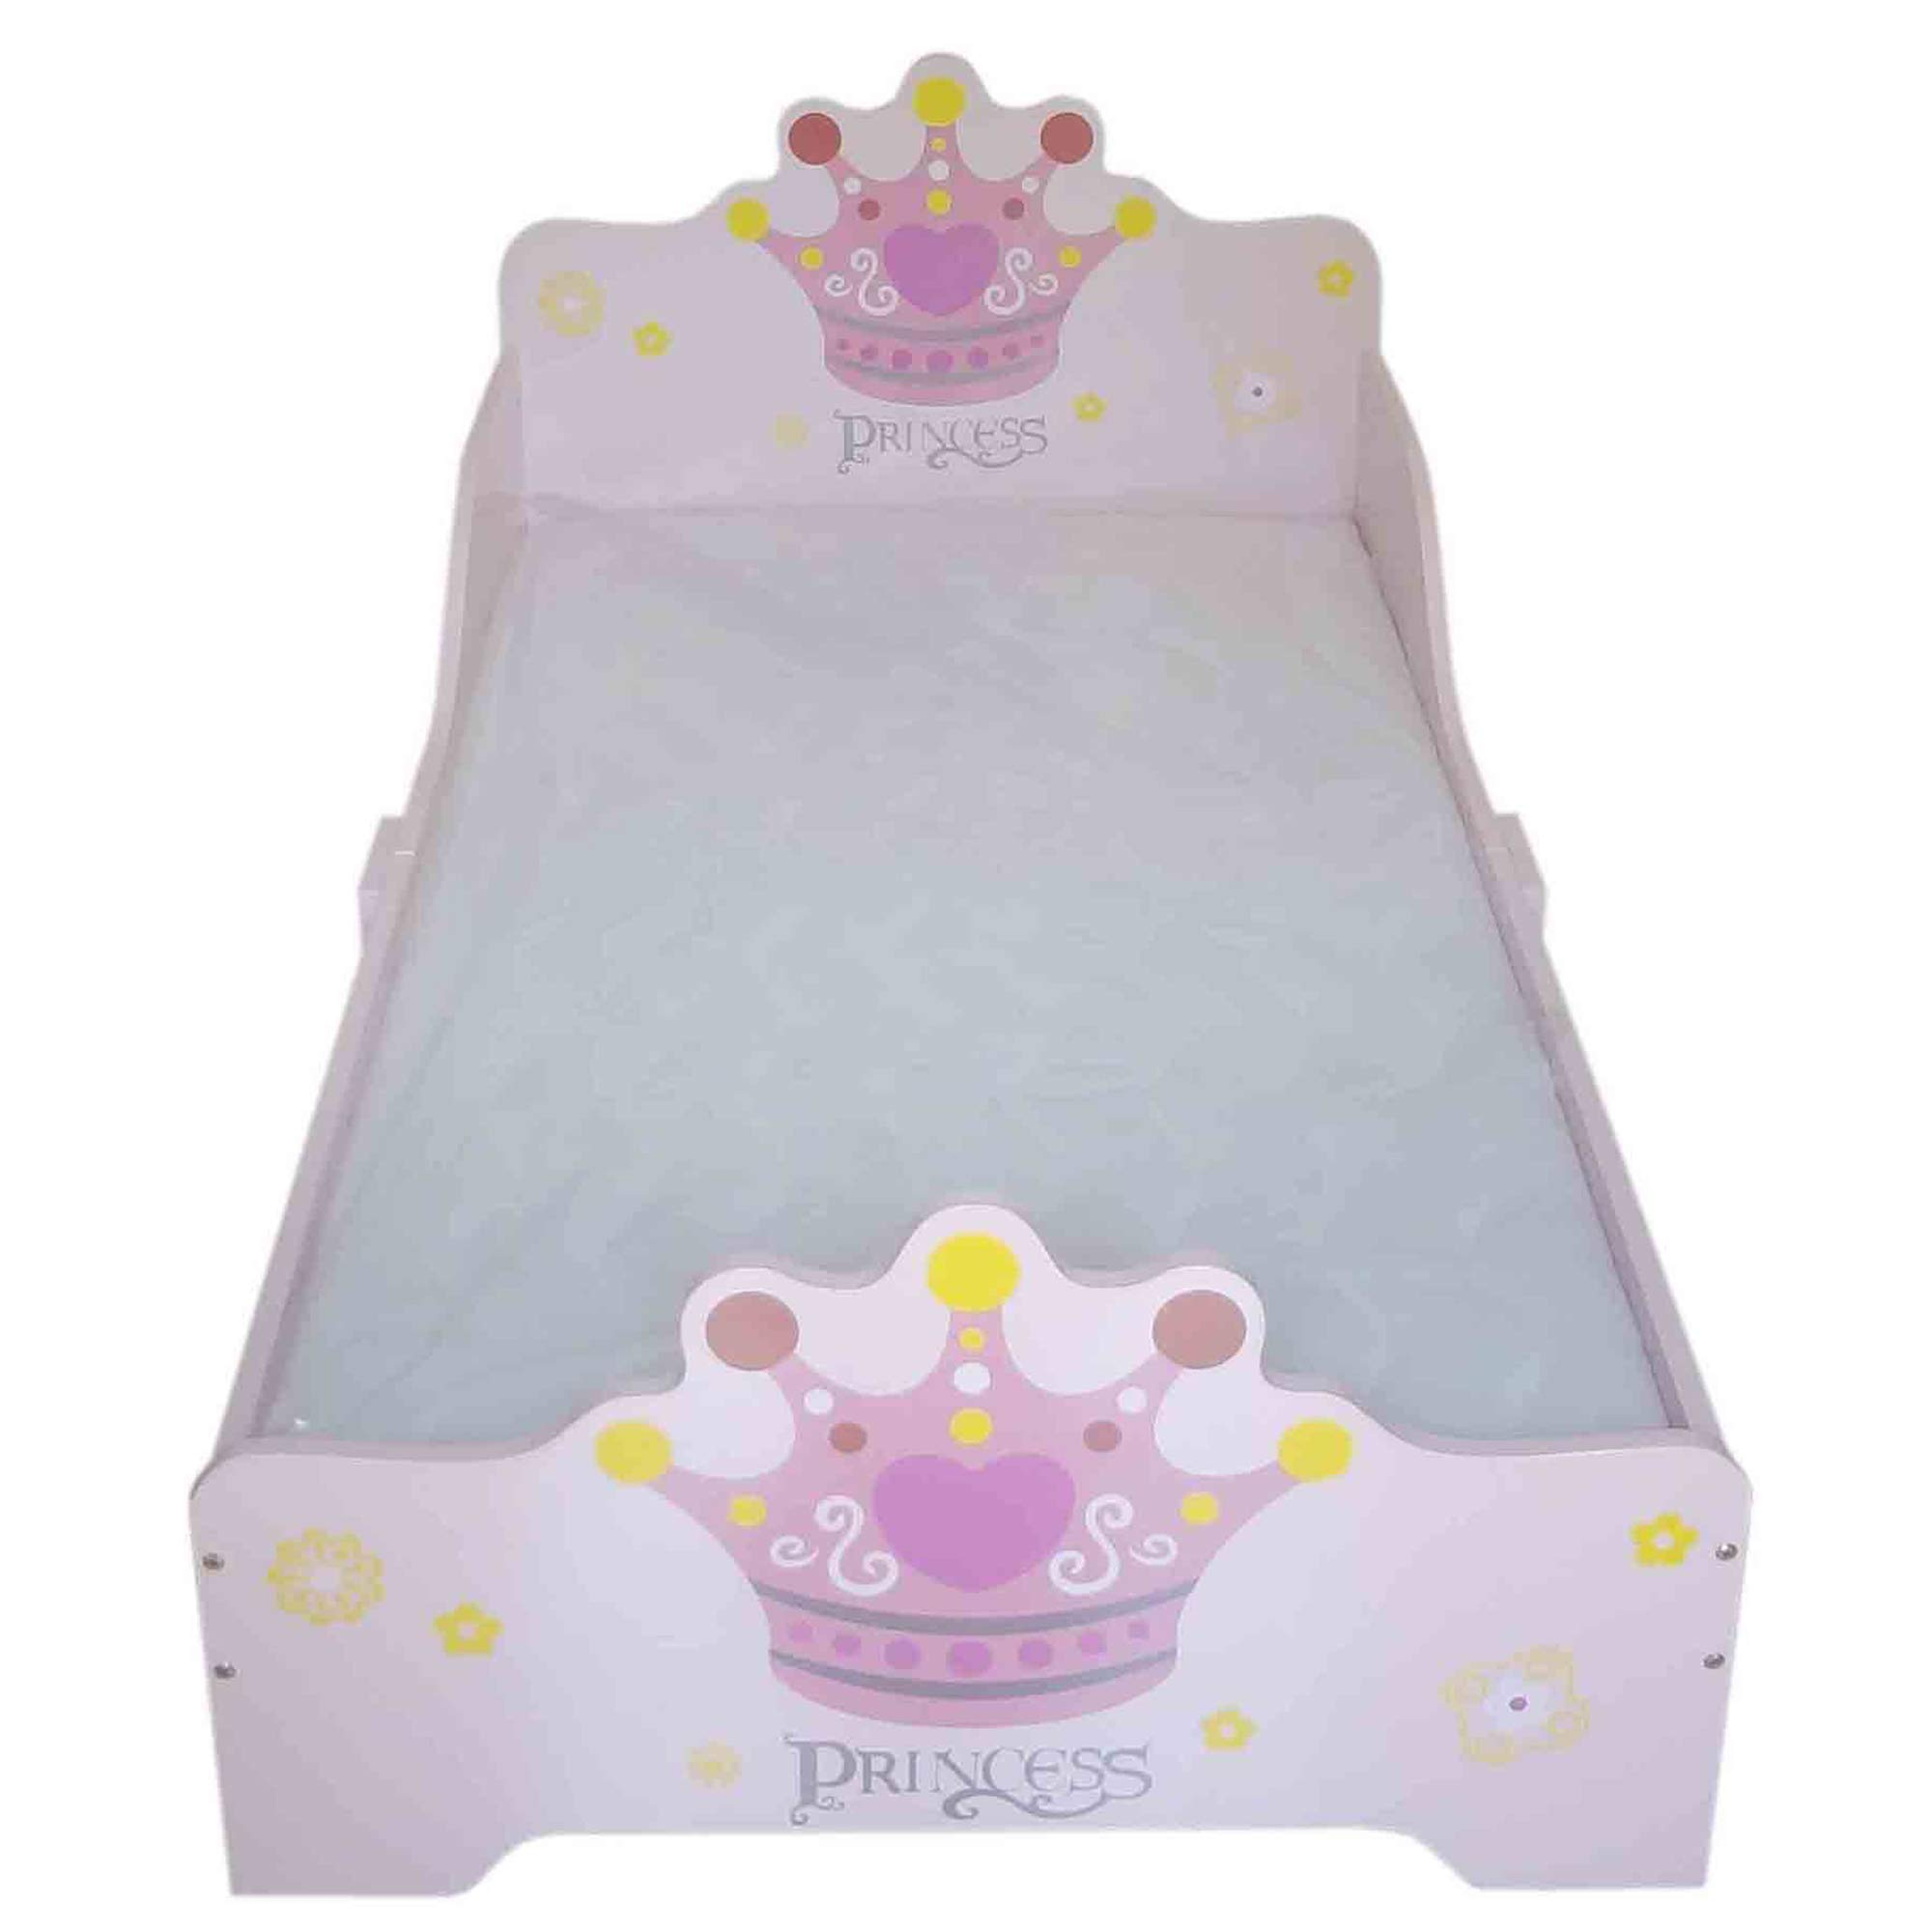 Bebe Style Princess Theme Wooden Toddler Bed Beautiful Designed for Toddlers and Children Easy Assembly, Standard Toddler Bed, Pink